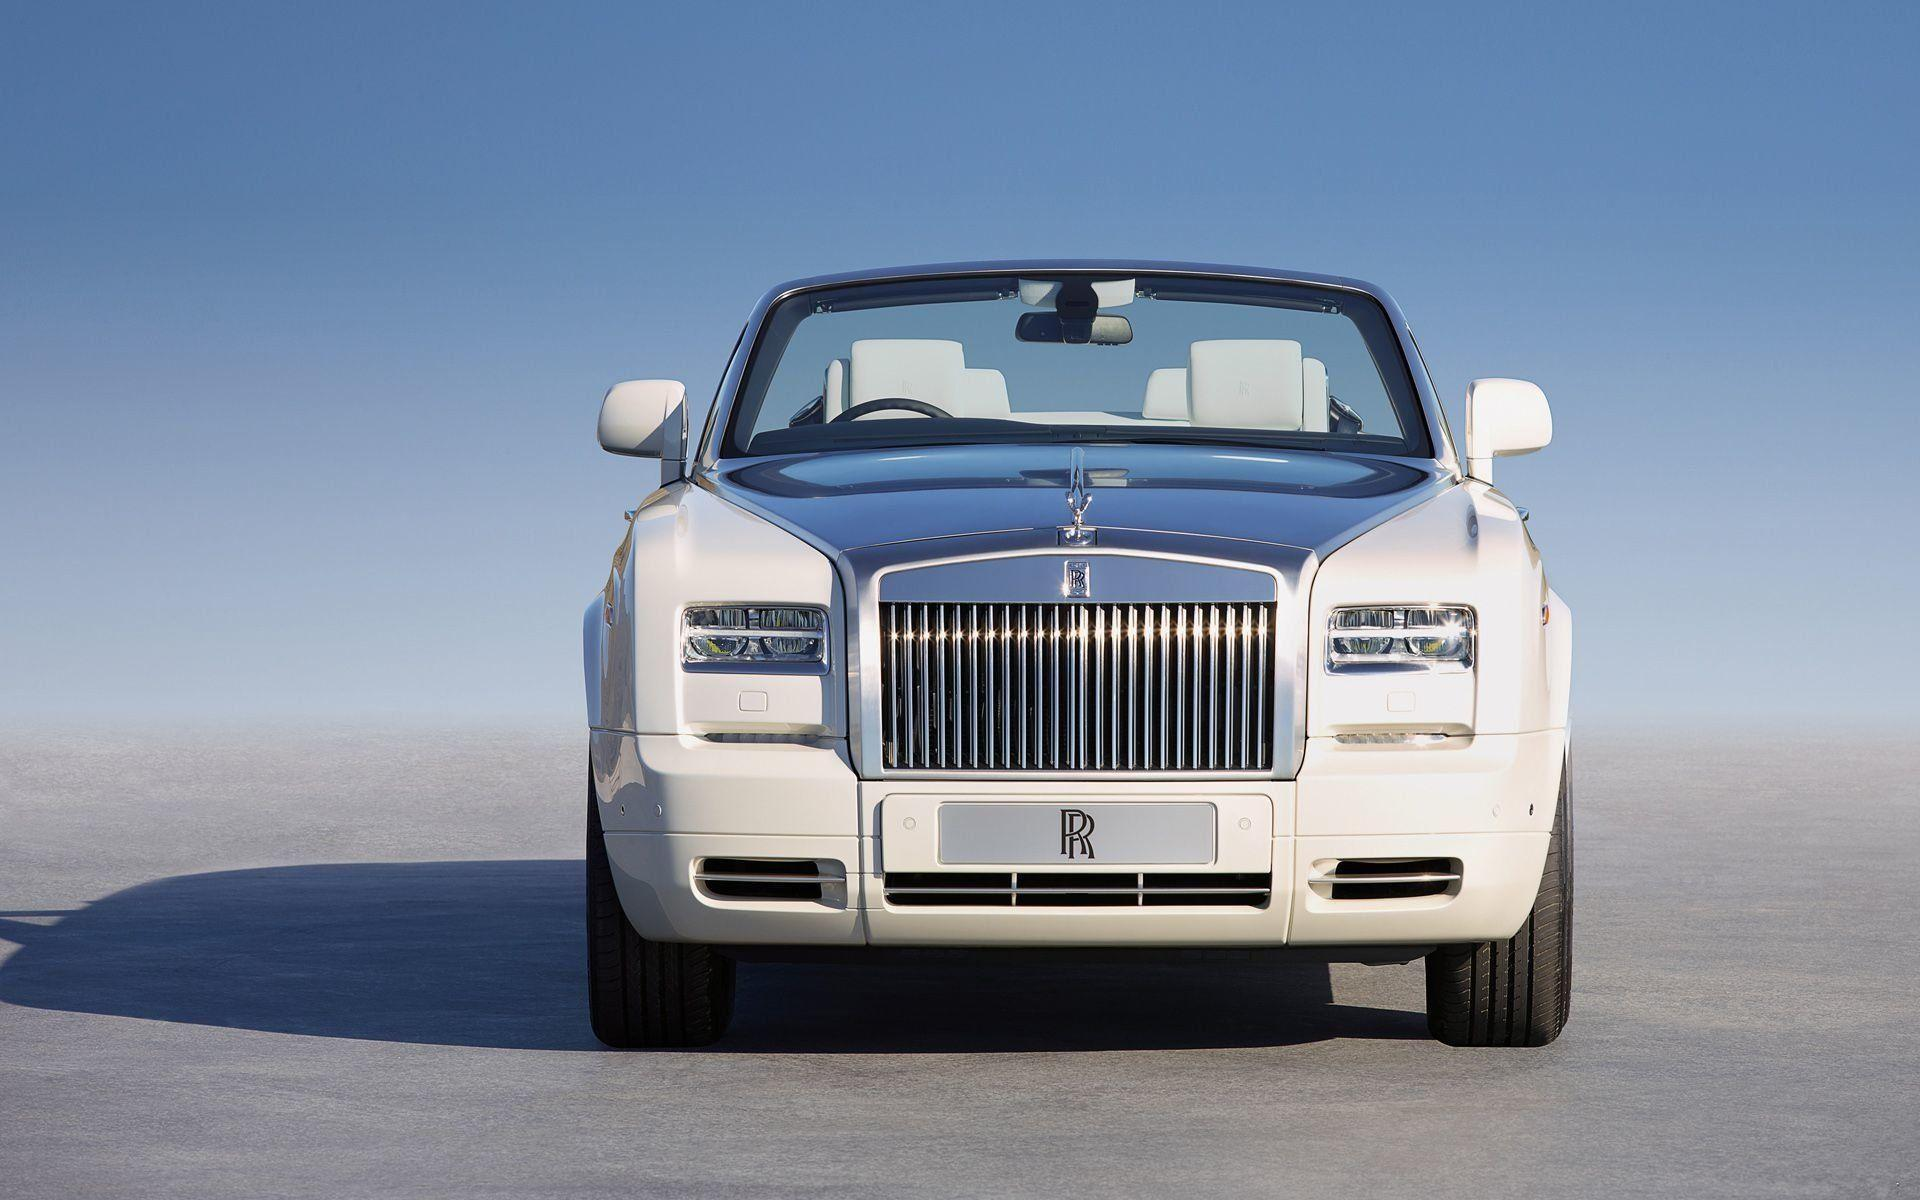 178 Rolls Royce HD Wallpapers | Backgrounds - Wallpaper Abyss